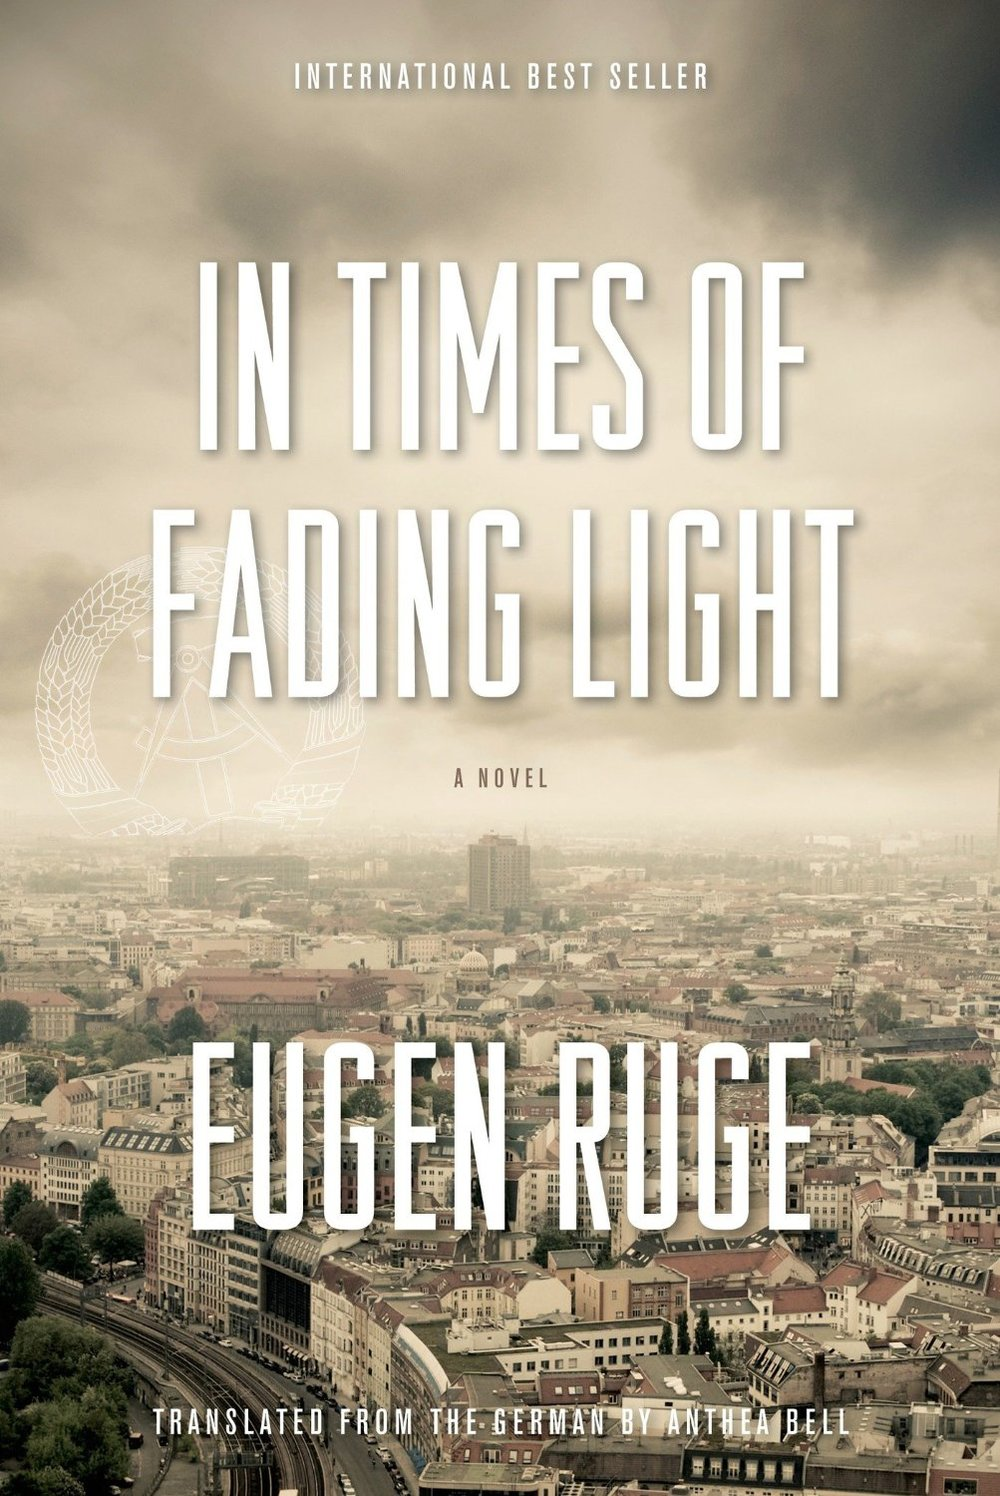 by Eugen Ruge, translated from GERMAN by Anthea Bell